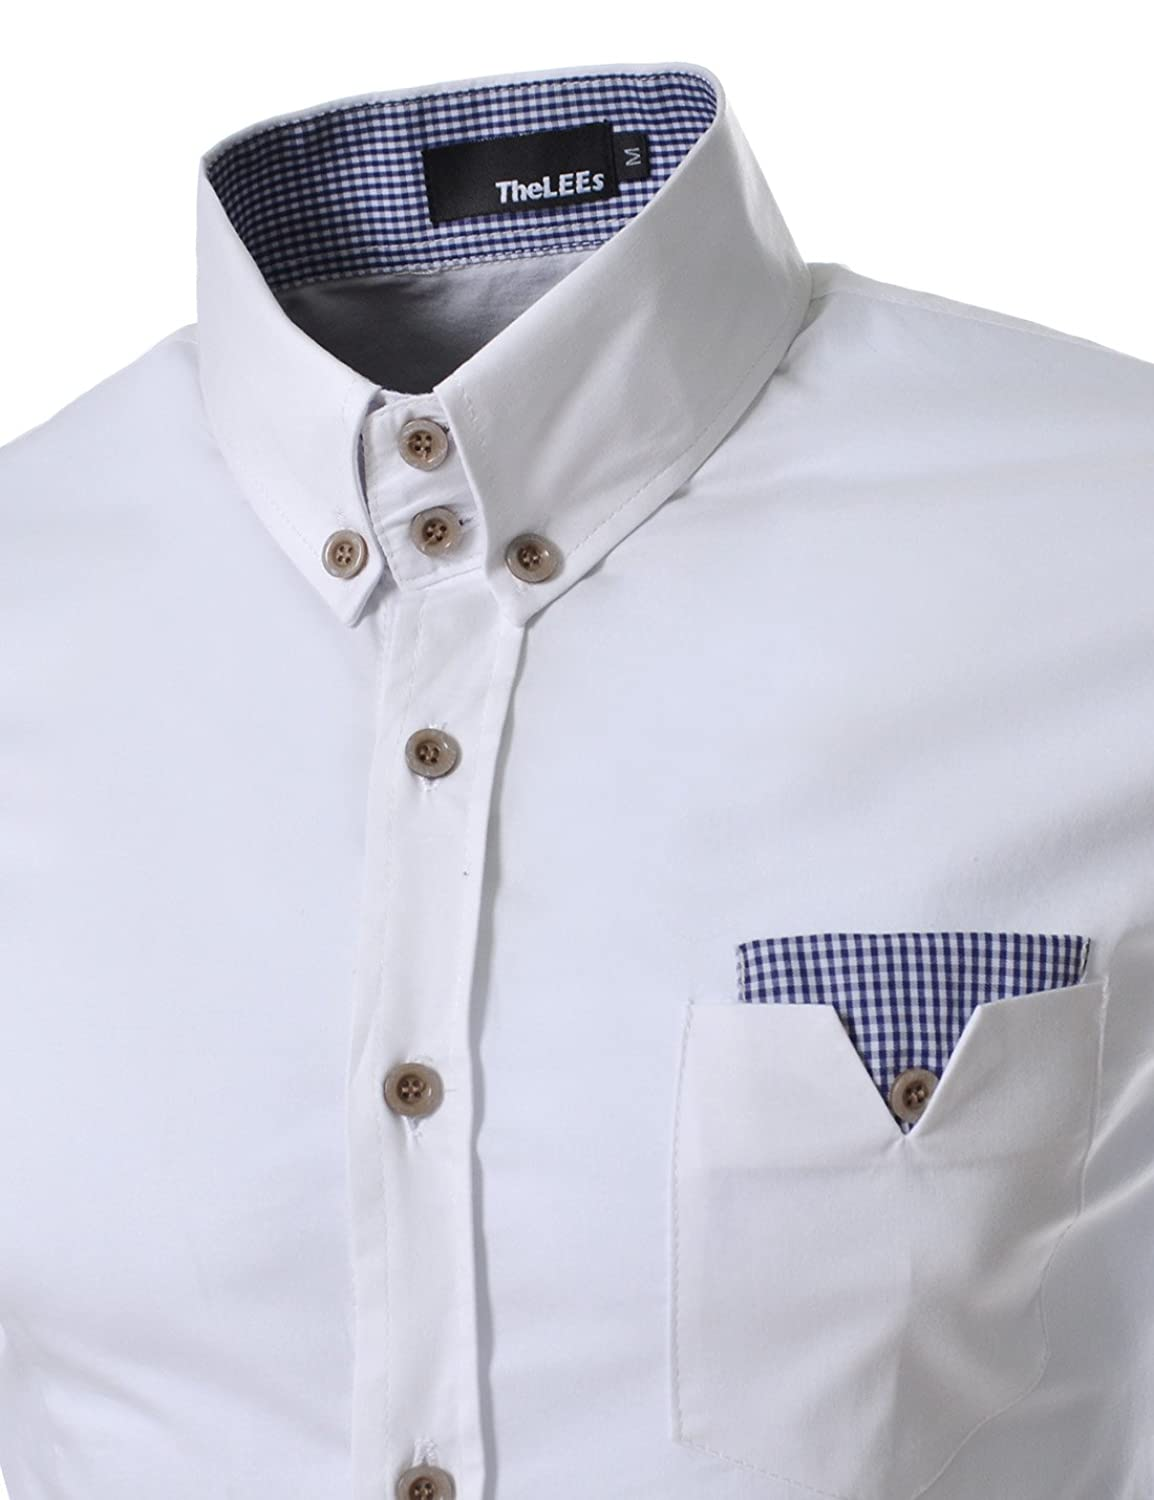 amazoncom dws thelees mens slim fit check patch pocket shirts white chest 42tag size xl clothing